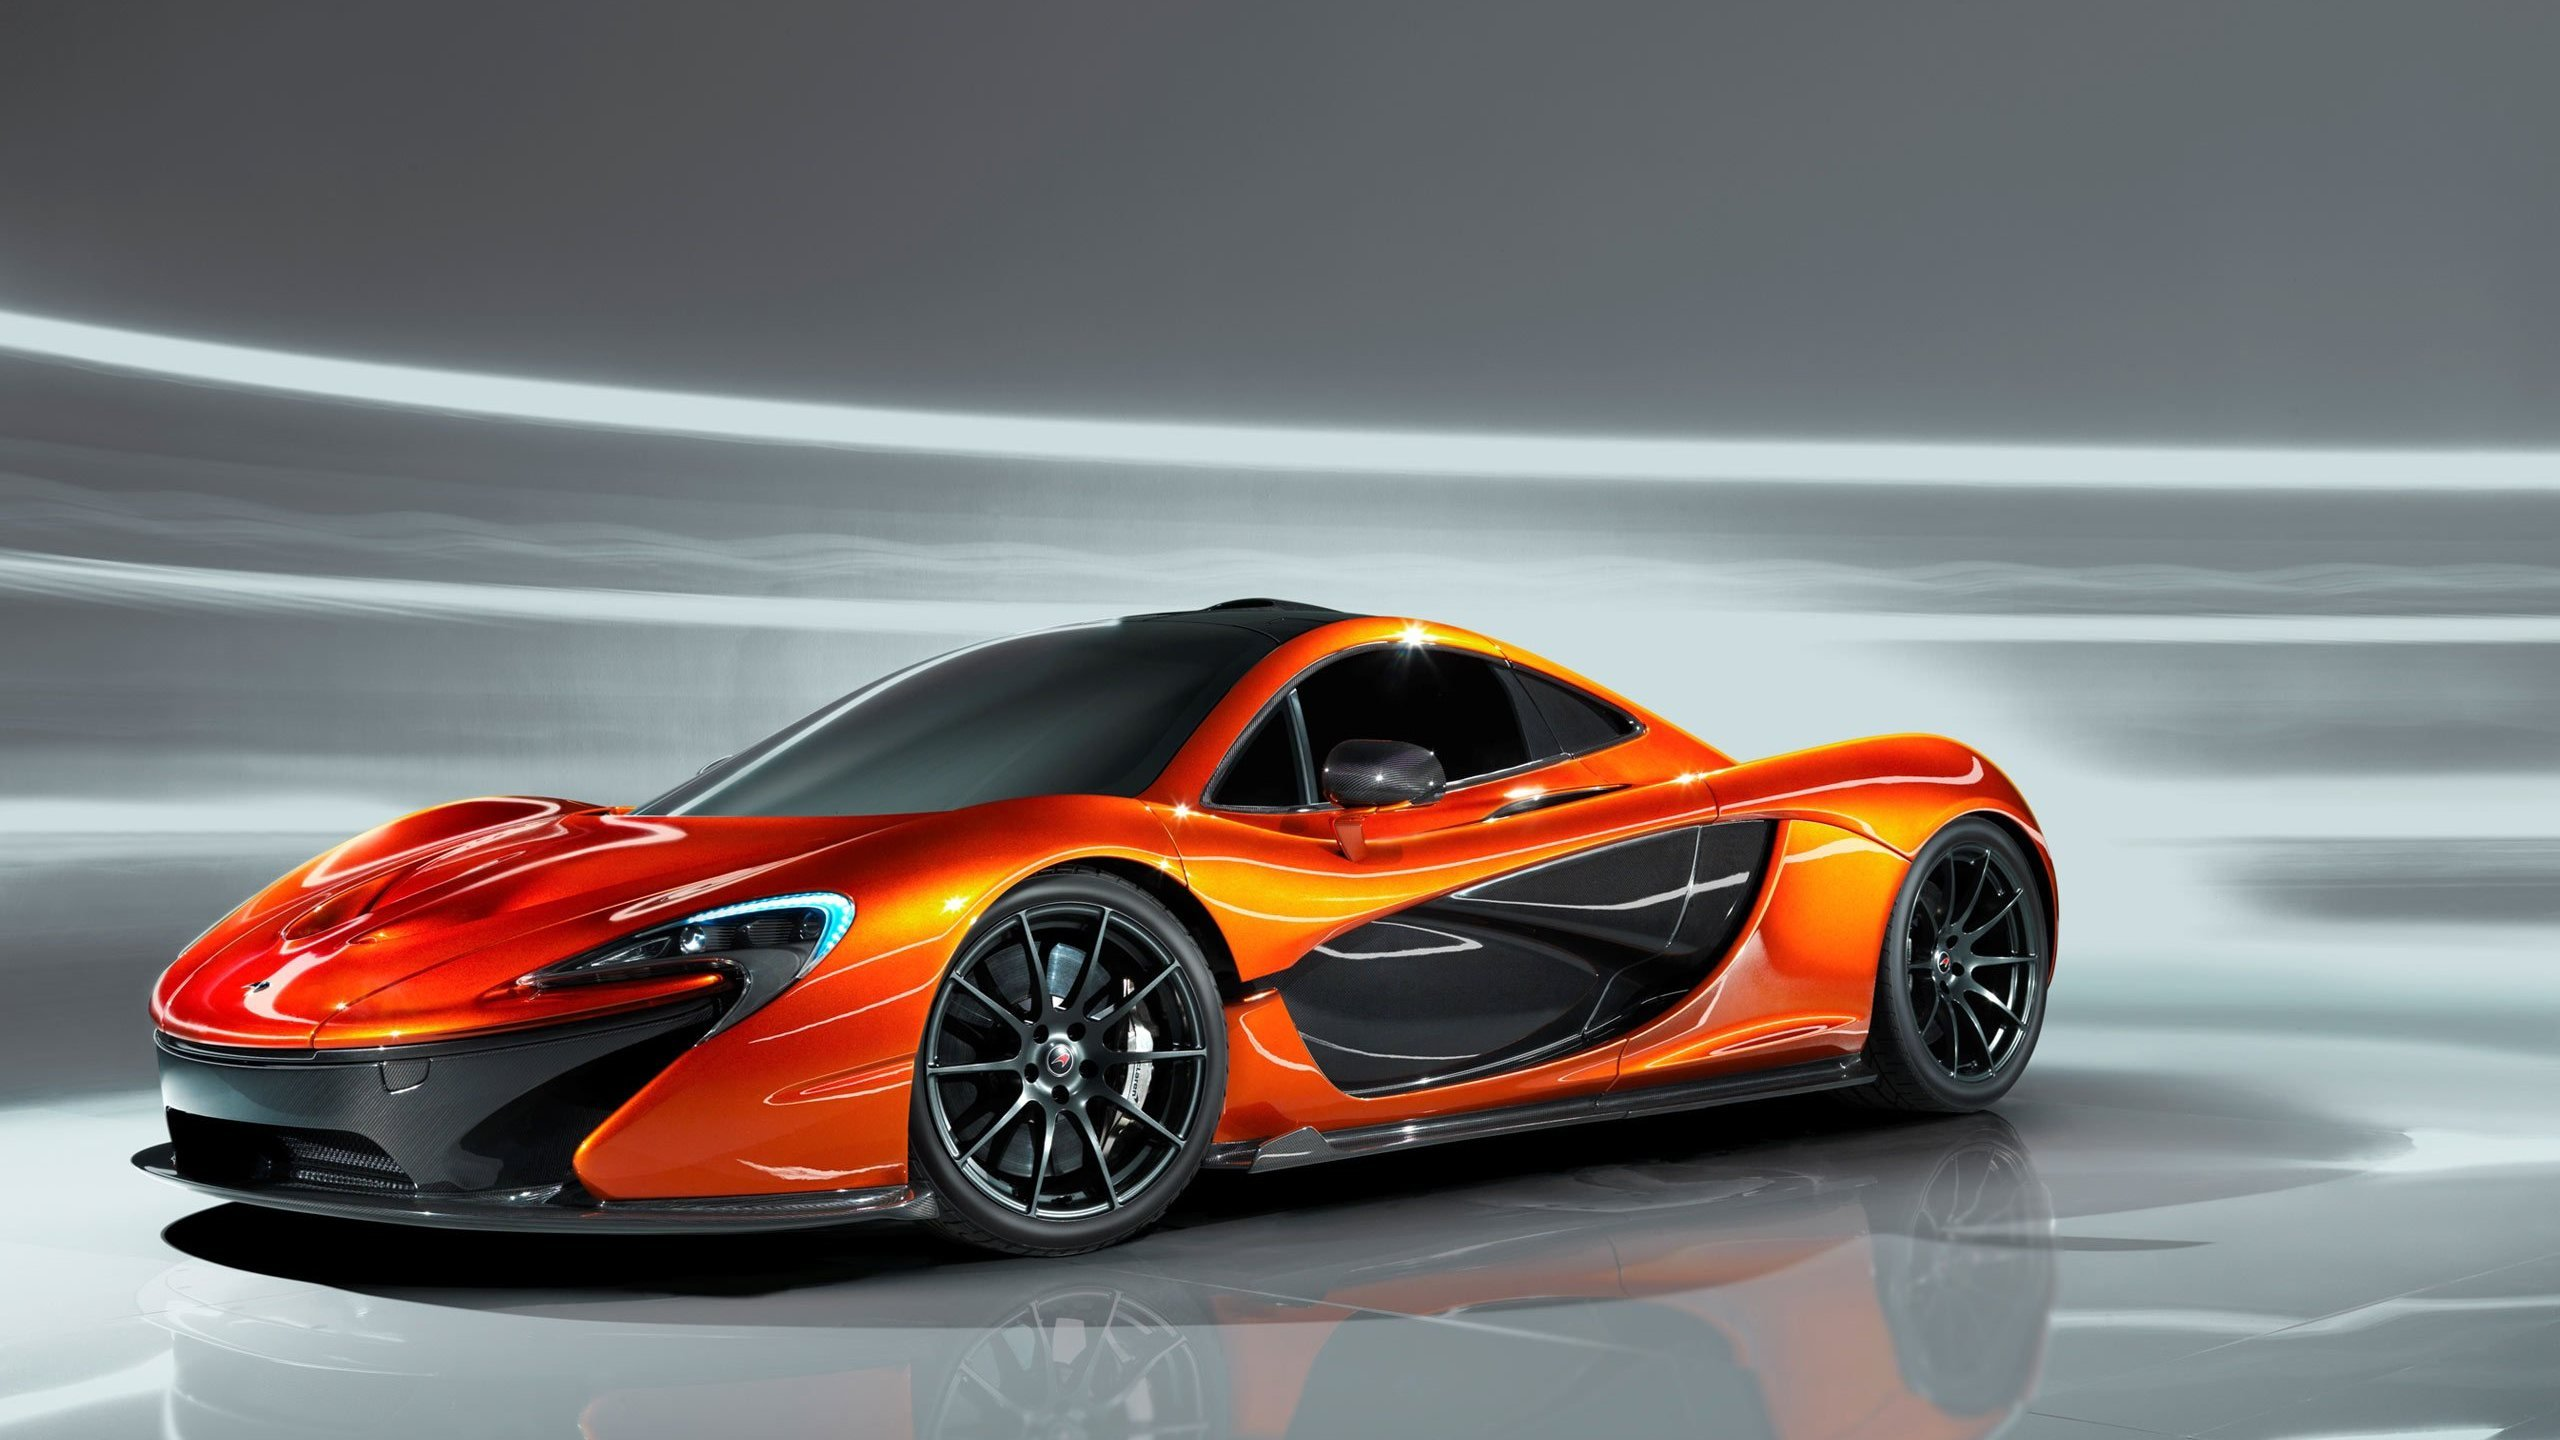 Super Cars 2014 HD Wallpapers Pictures Desktop 2560x1440